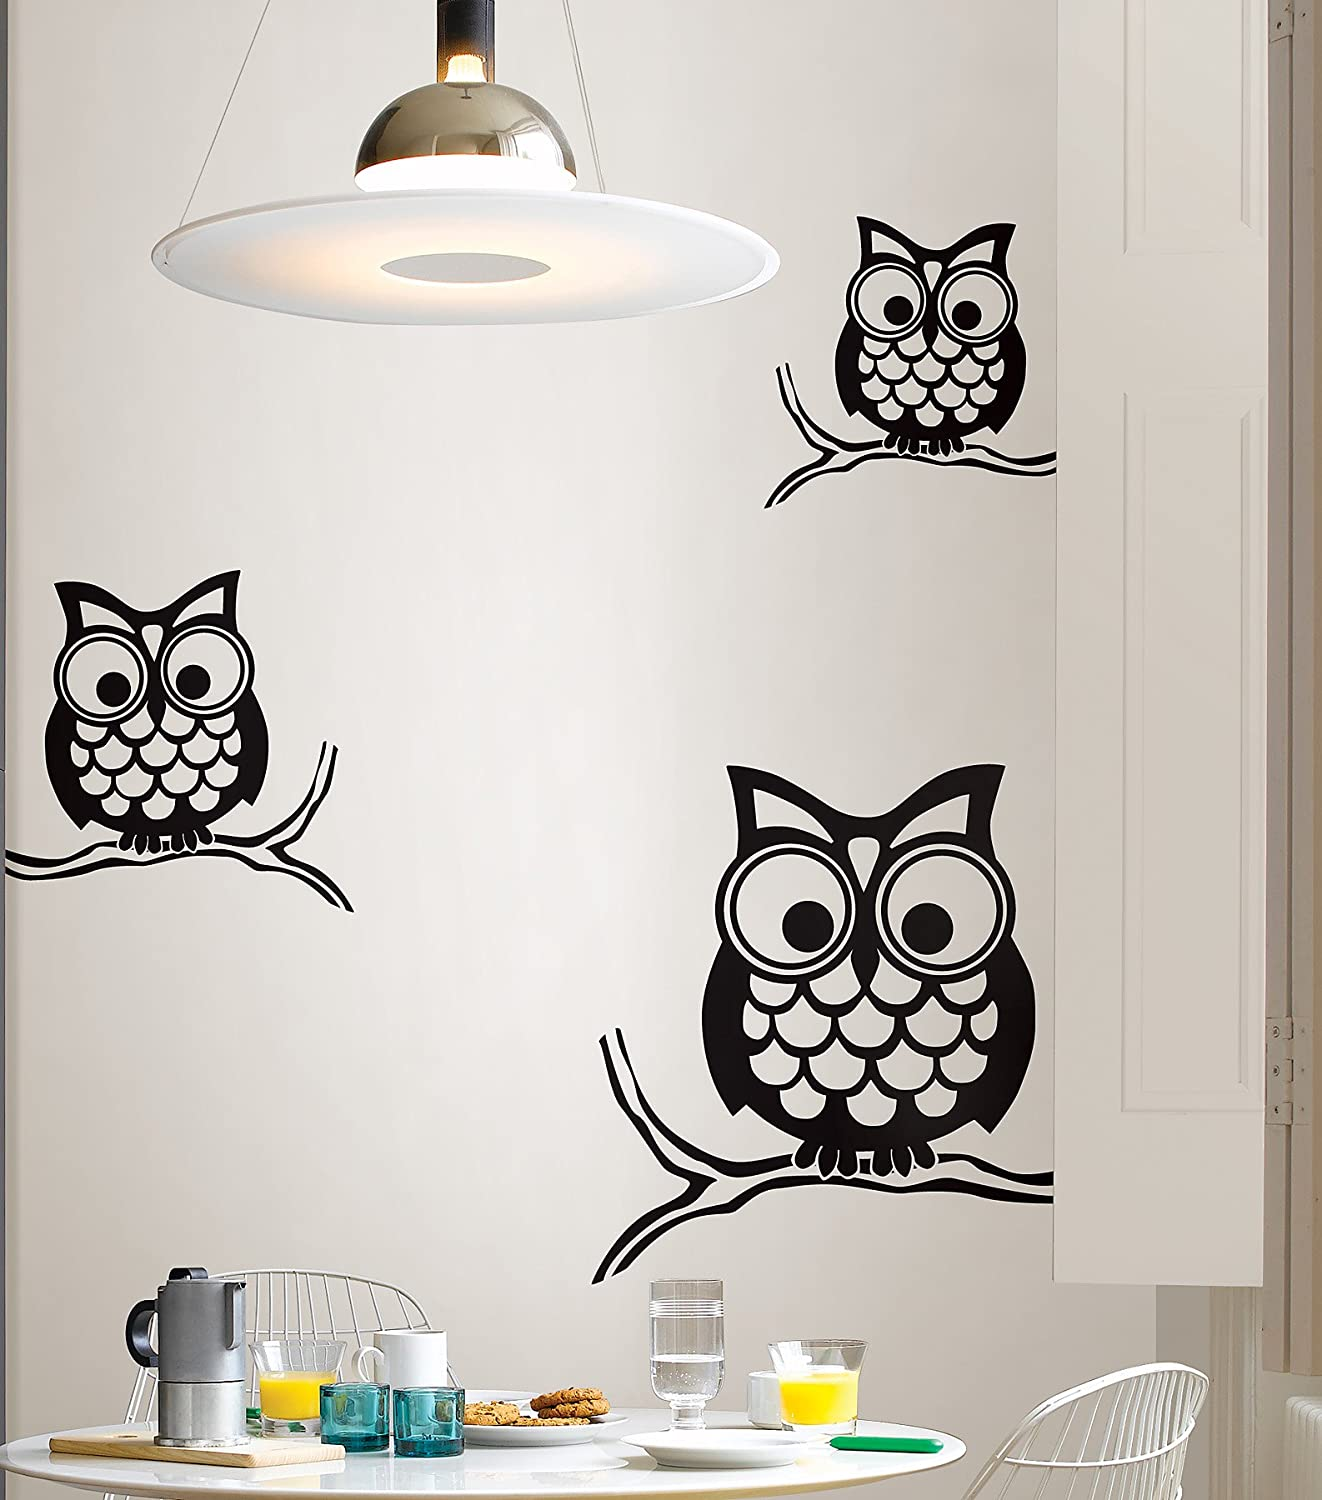 Wall Pops WPK96848 Peel U0026 Stick Give A Hoot Small Wall Art Kit   Decorative  Wall Appliques   Amazon.com